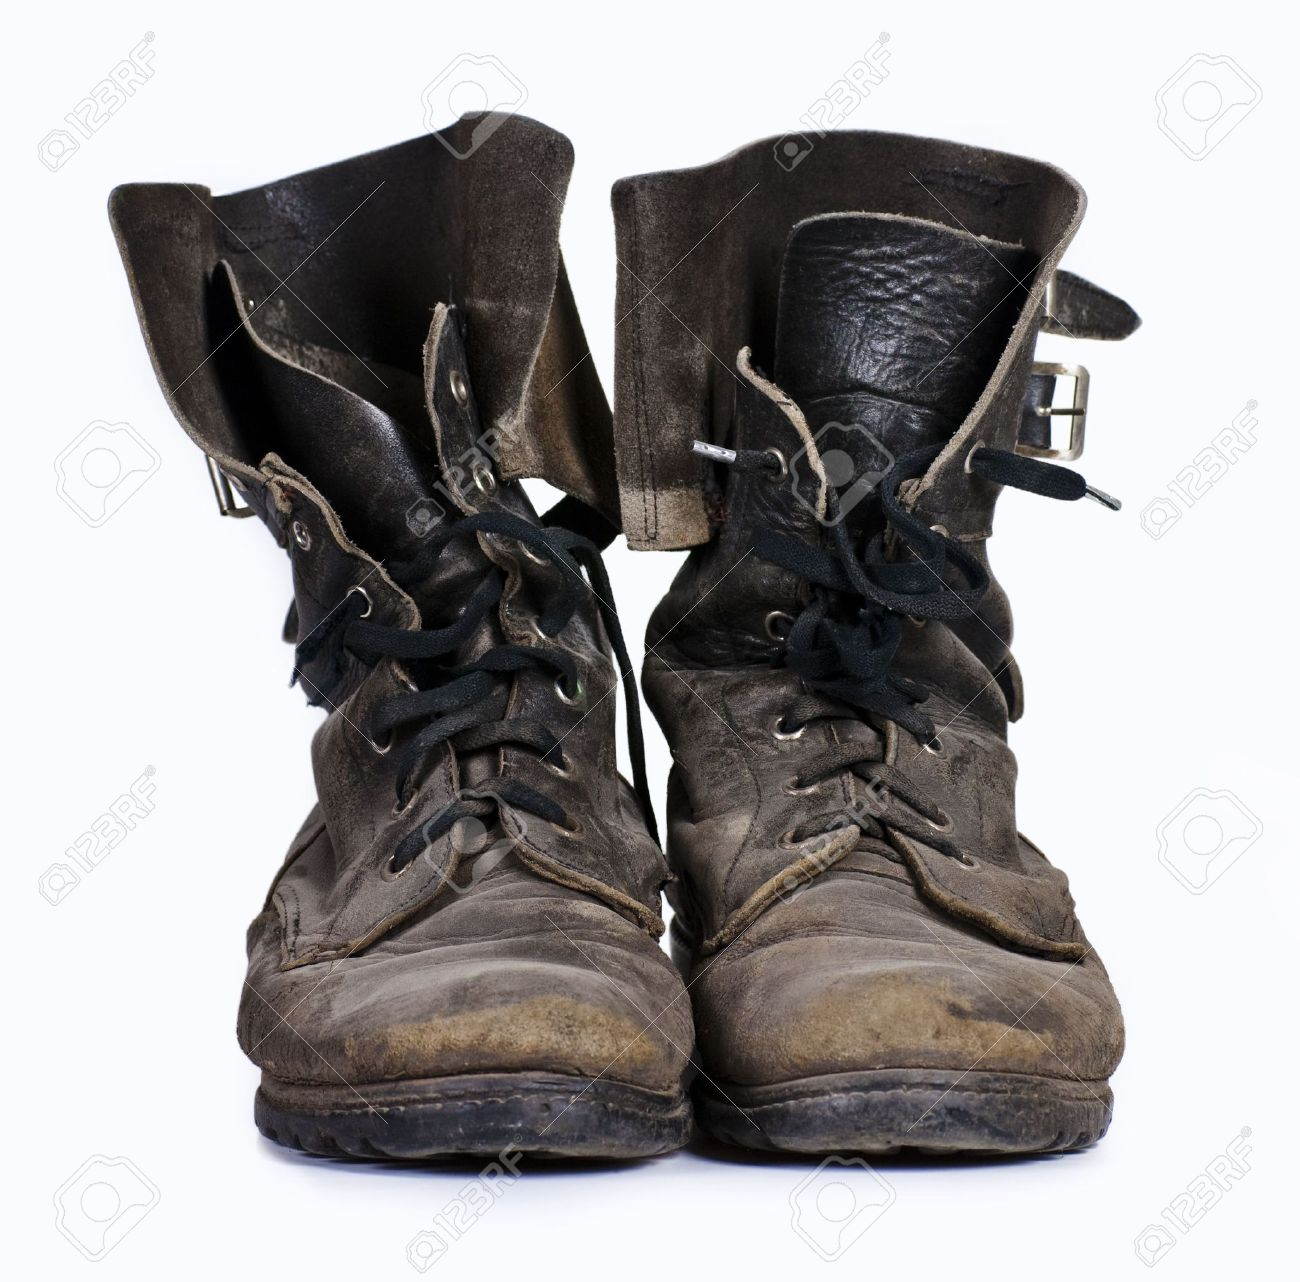 e95c0447b2d8 Old Army Boots Stock Photo